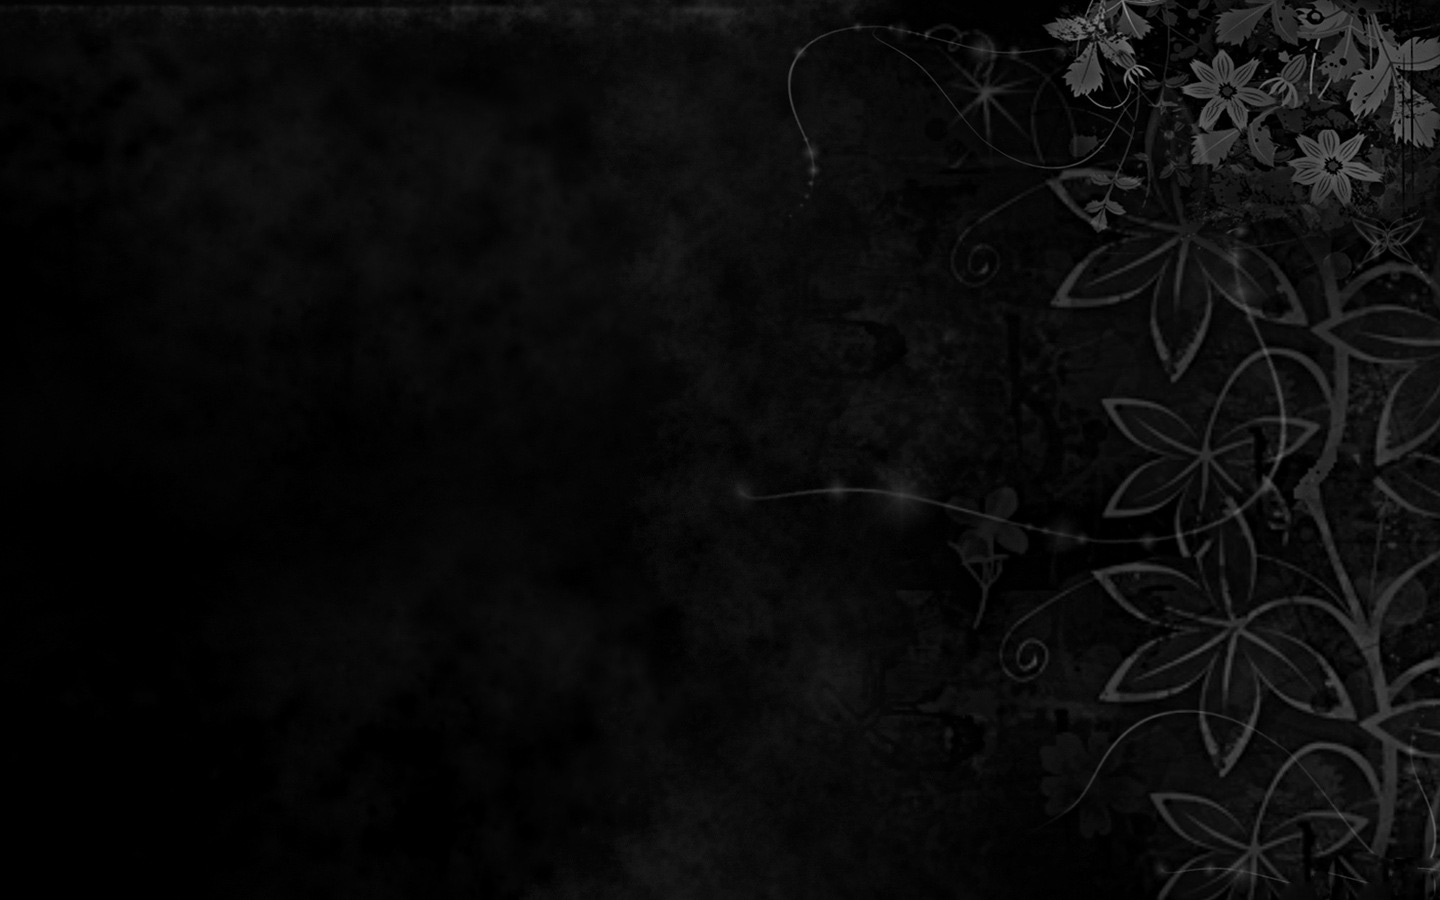 Dark Background 07 Wallpaper, free dark background images, pictures download